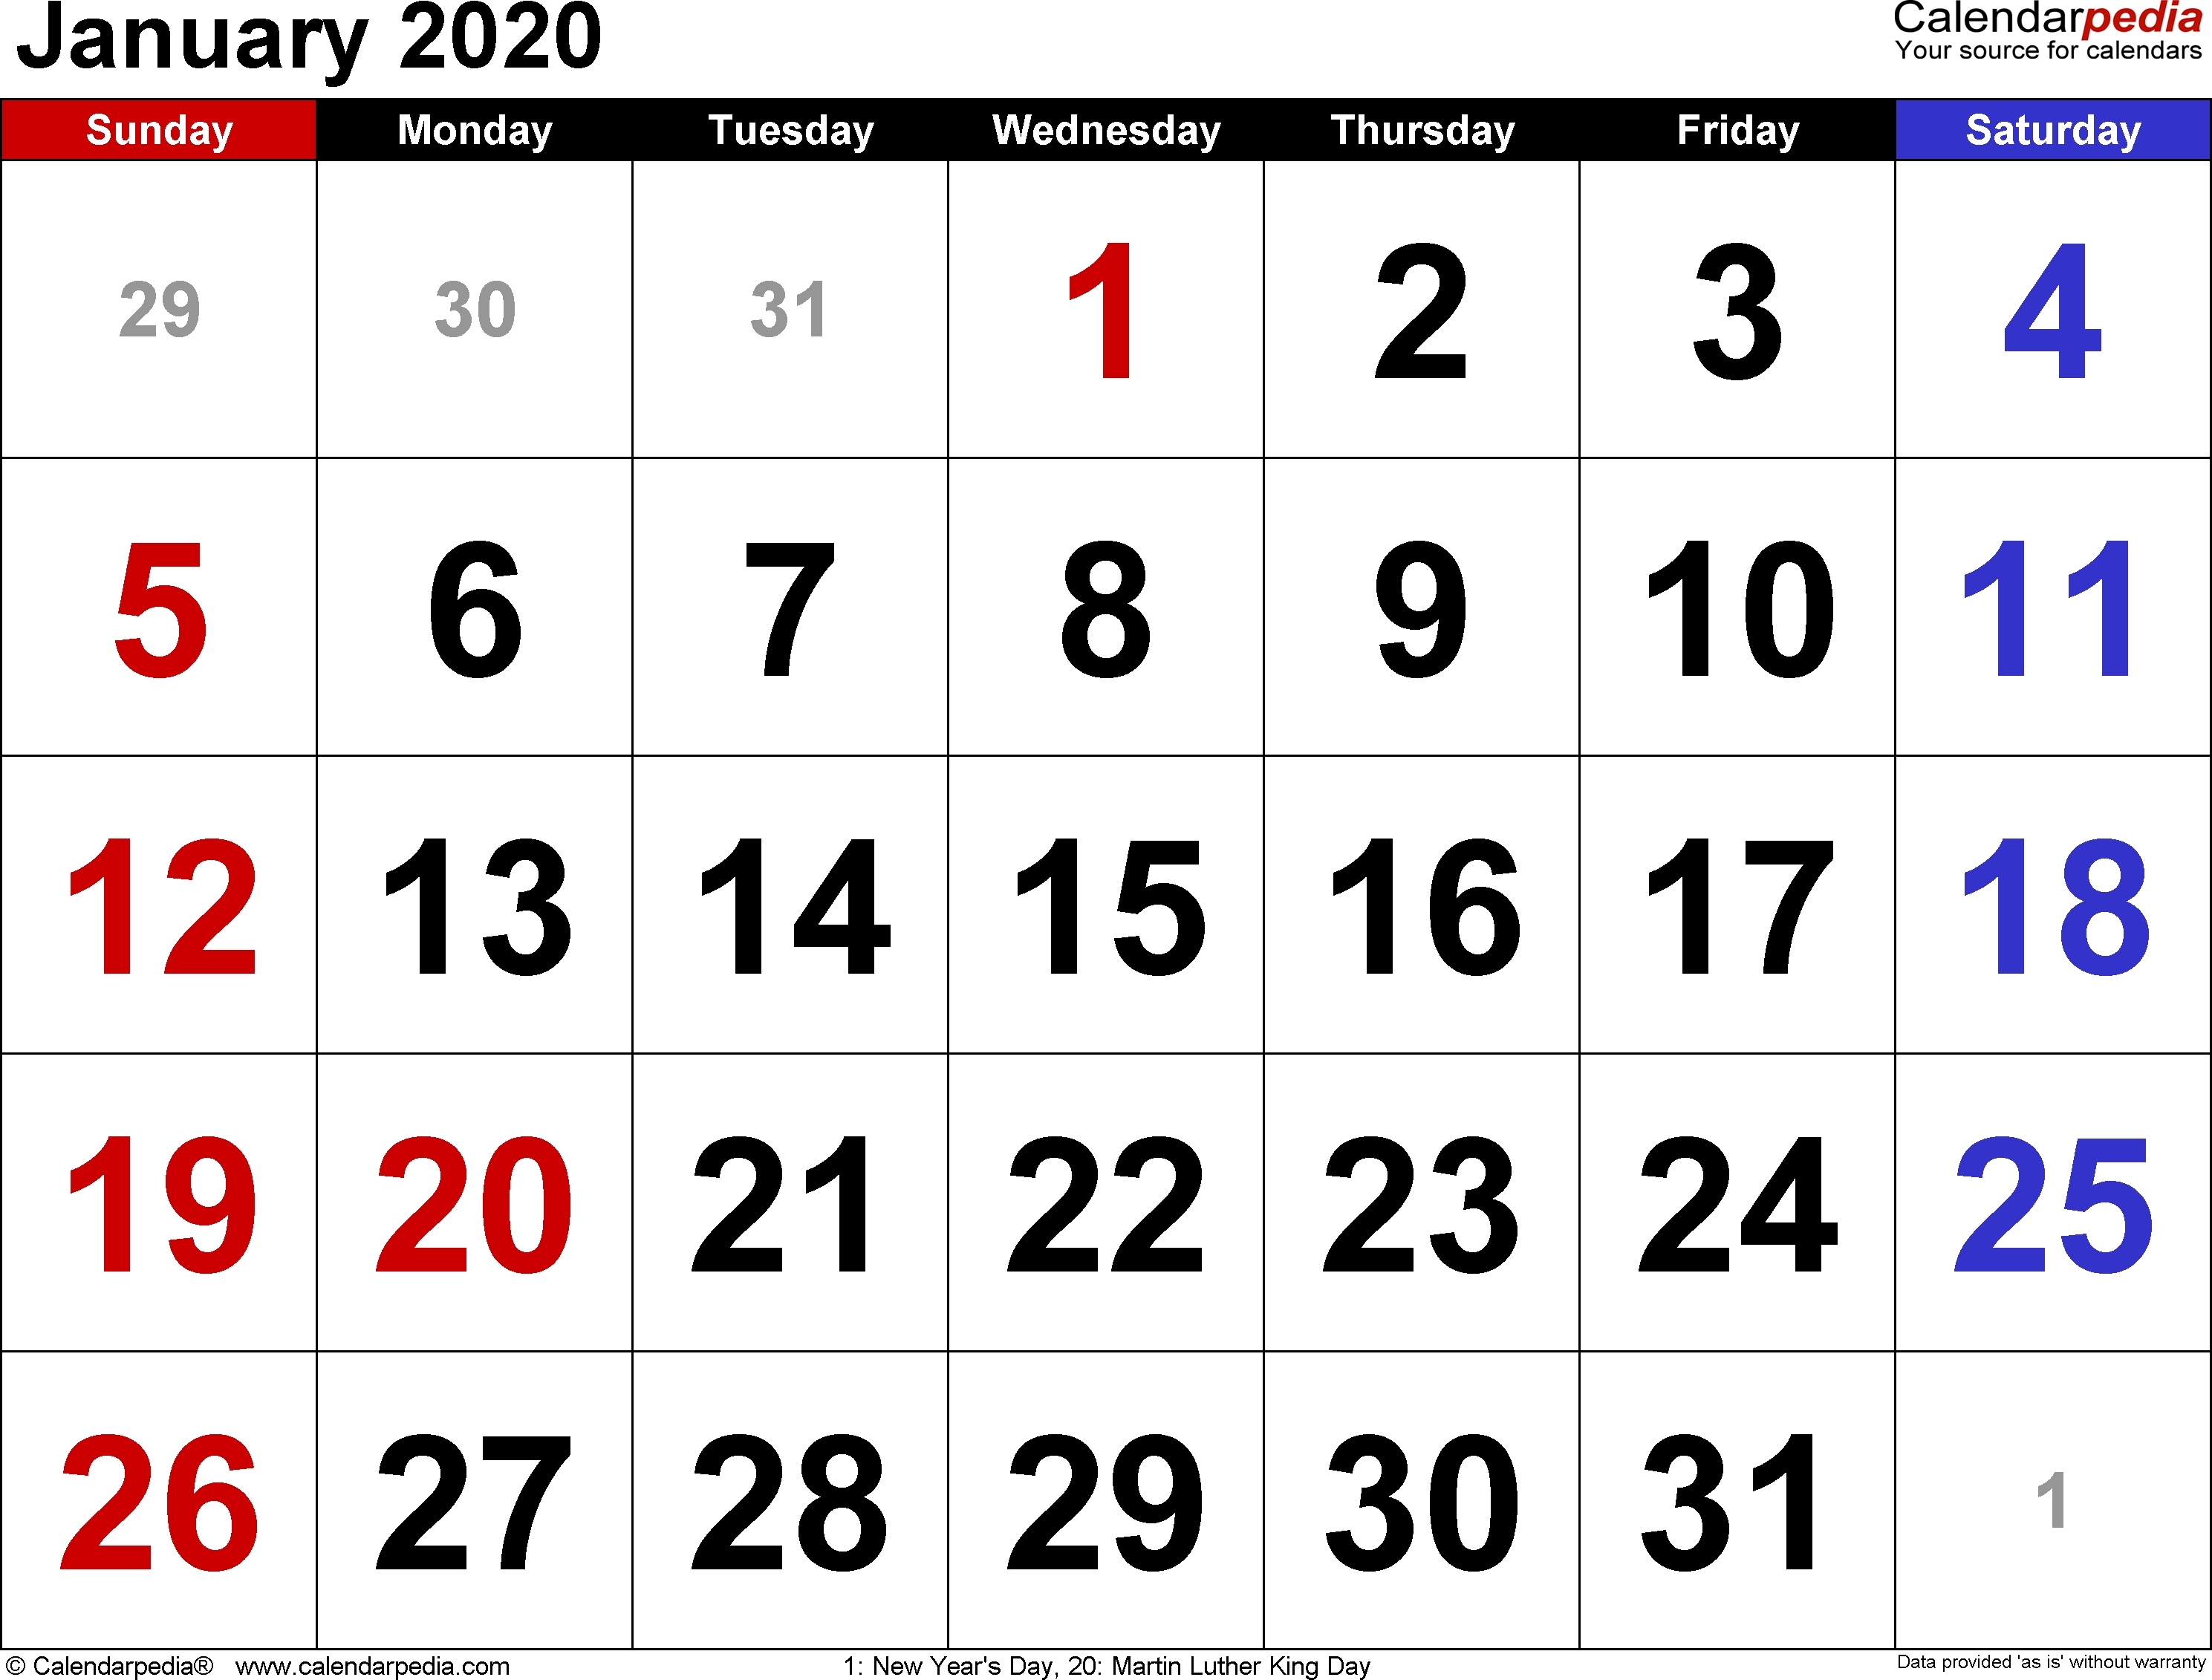 January 2020 Calendars For Word, Excel & Pdf